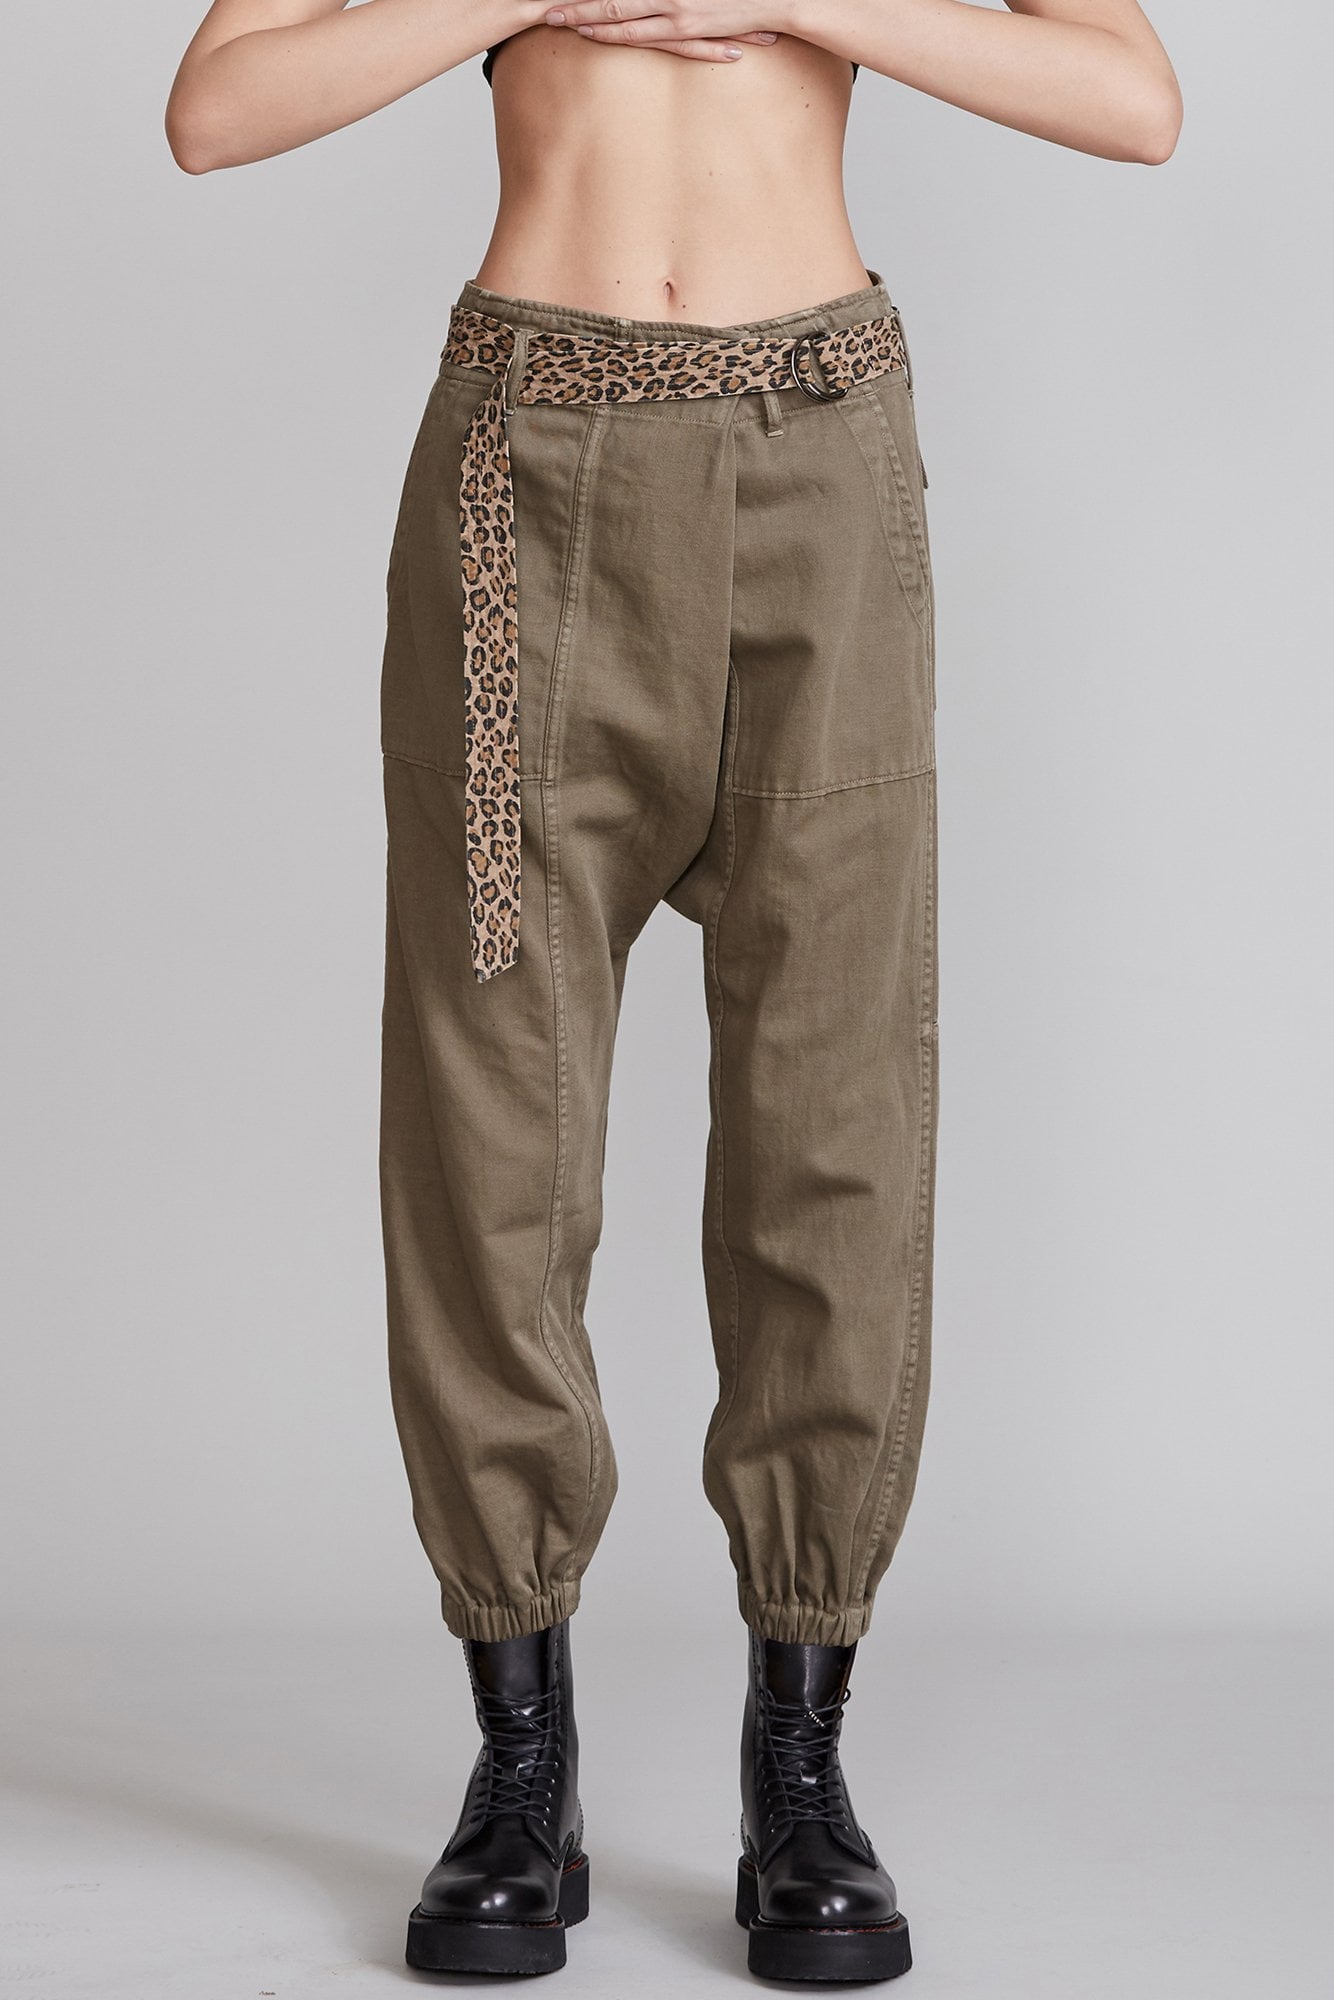 Crossover Utility Drop Pant - Olive